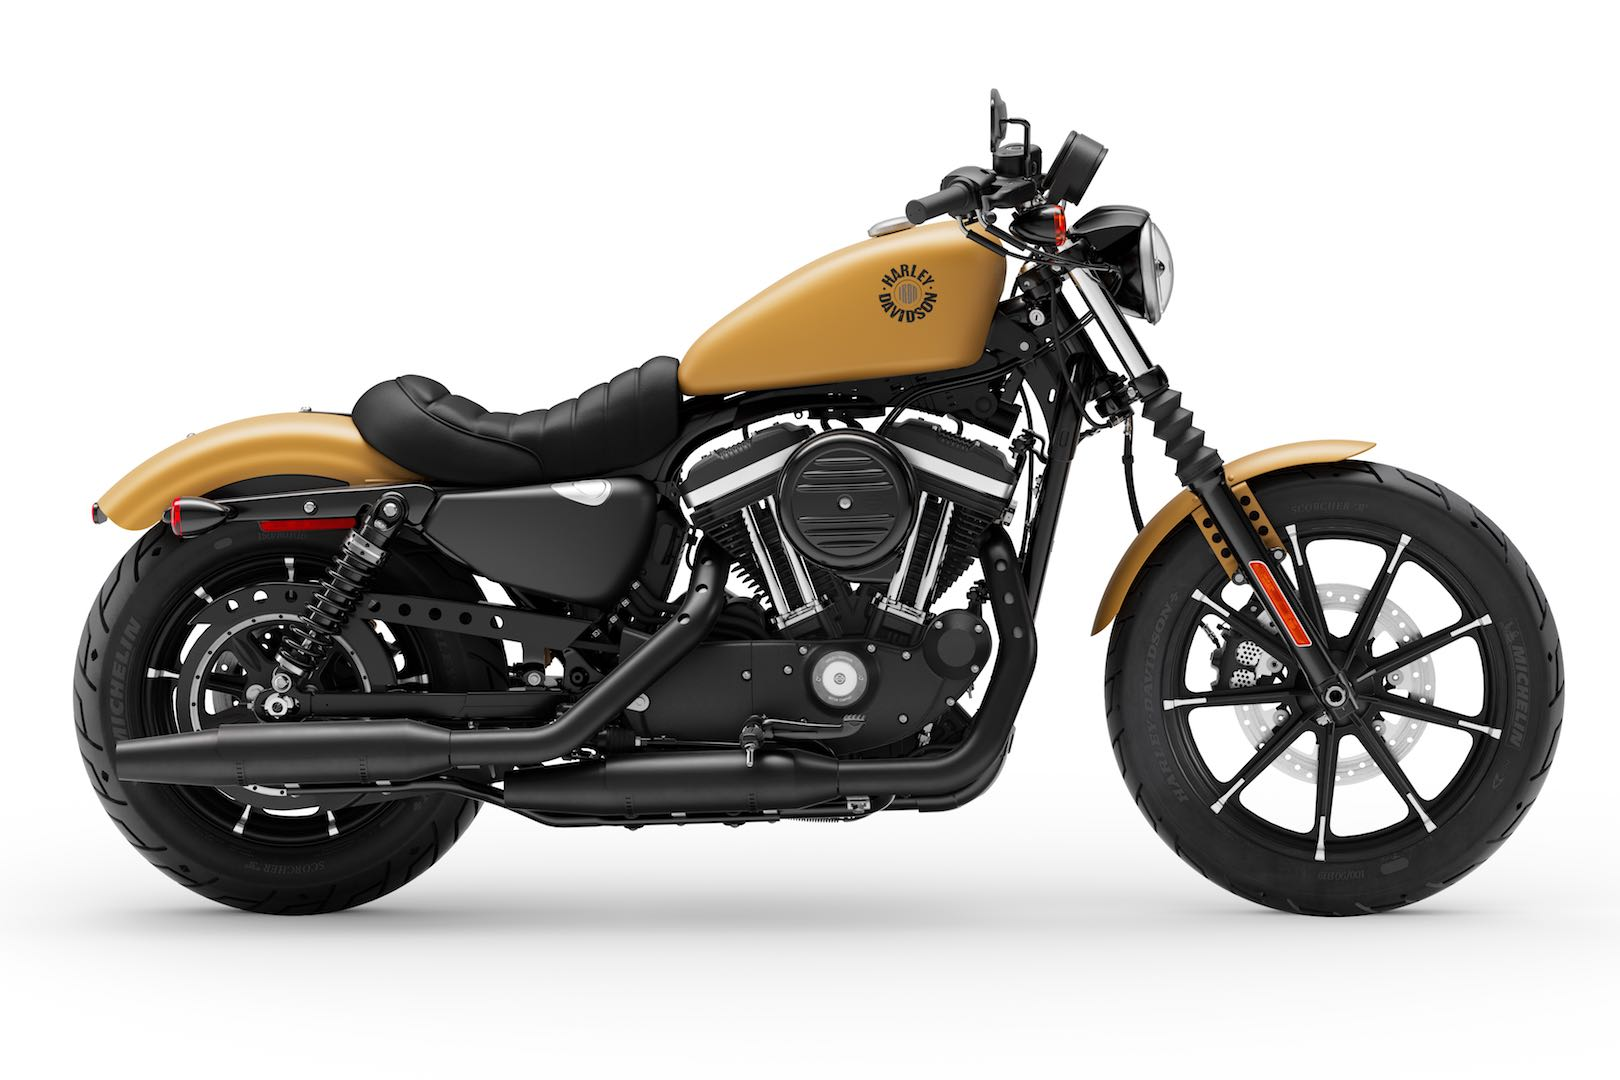 2020 Harley-Davidson Iron 883 Buyer's Guide yellow